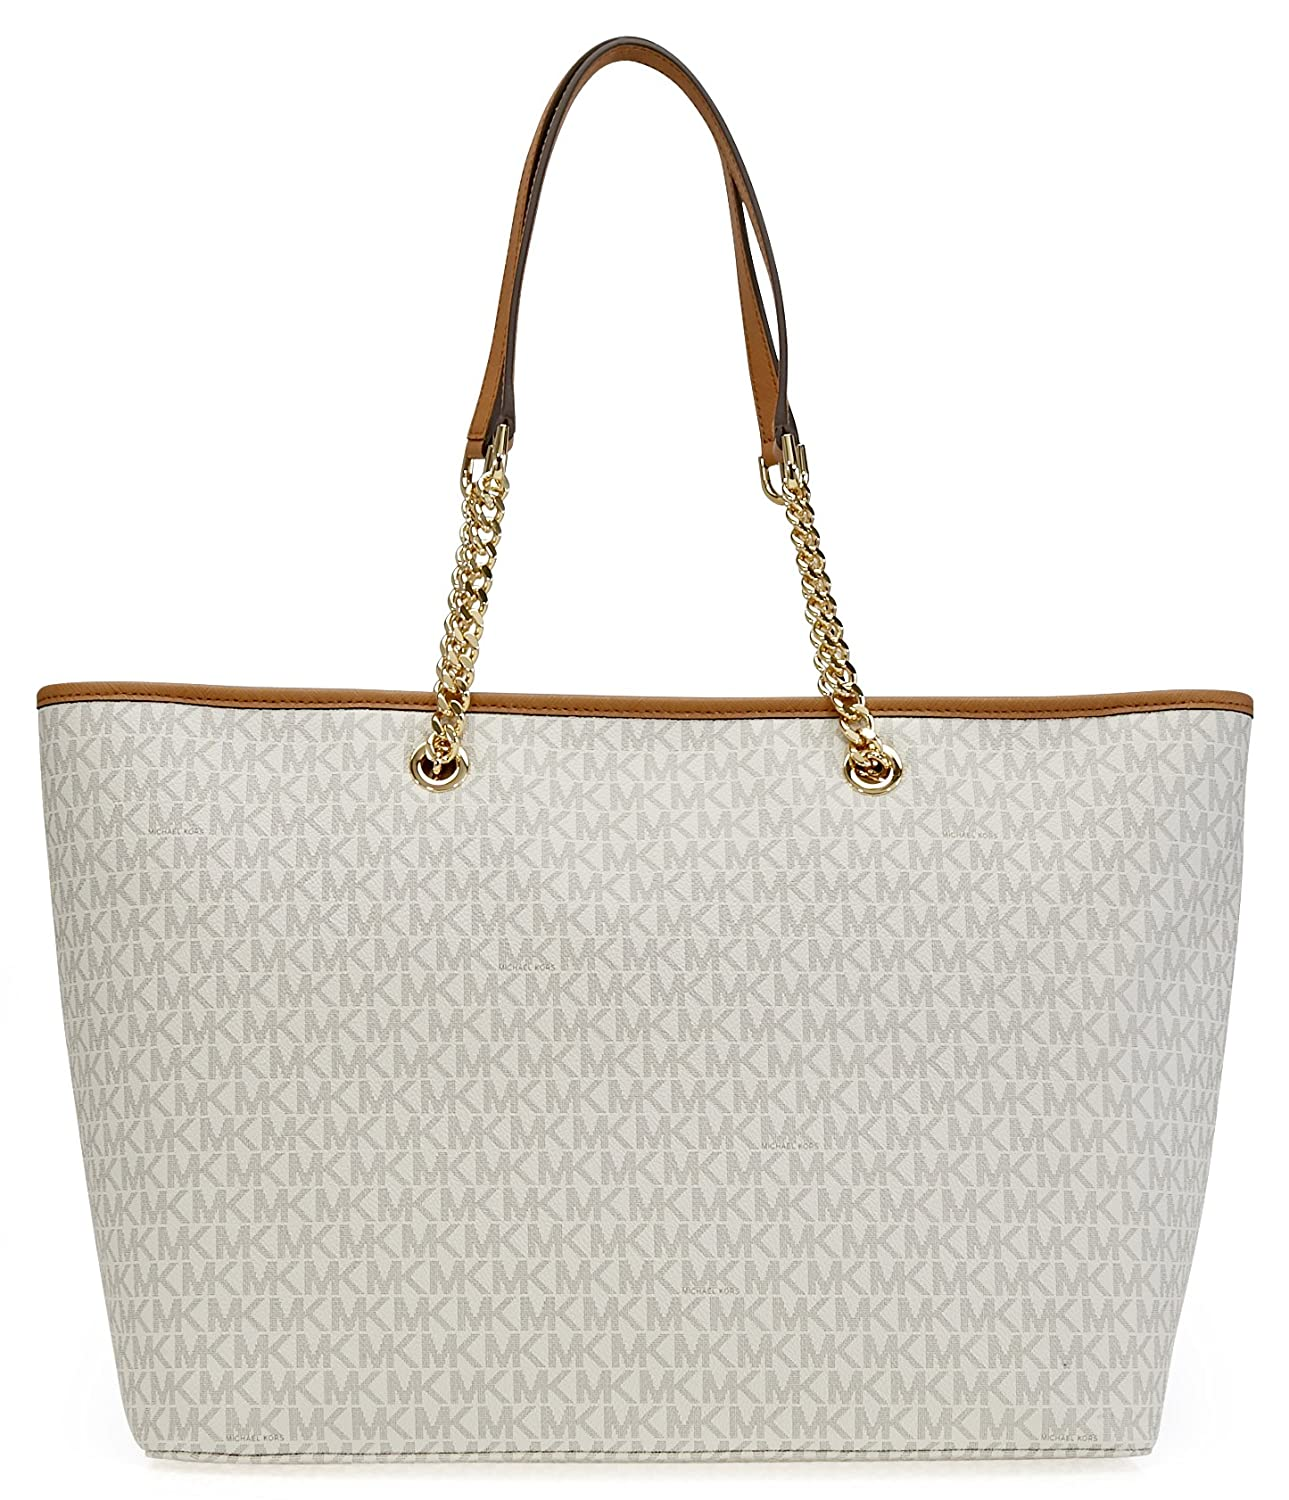 fb1d60b52bce Michael Kors Jet Set Travel Chain Signature Tz Tote Vanilla: Handbags:  Amazon.com